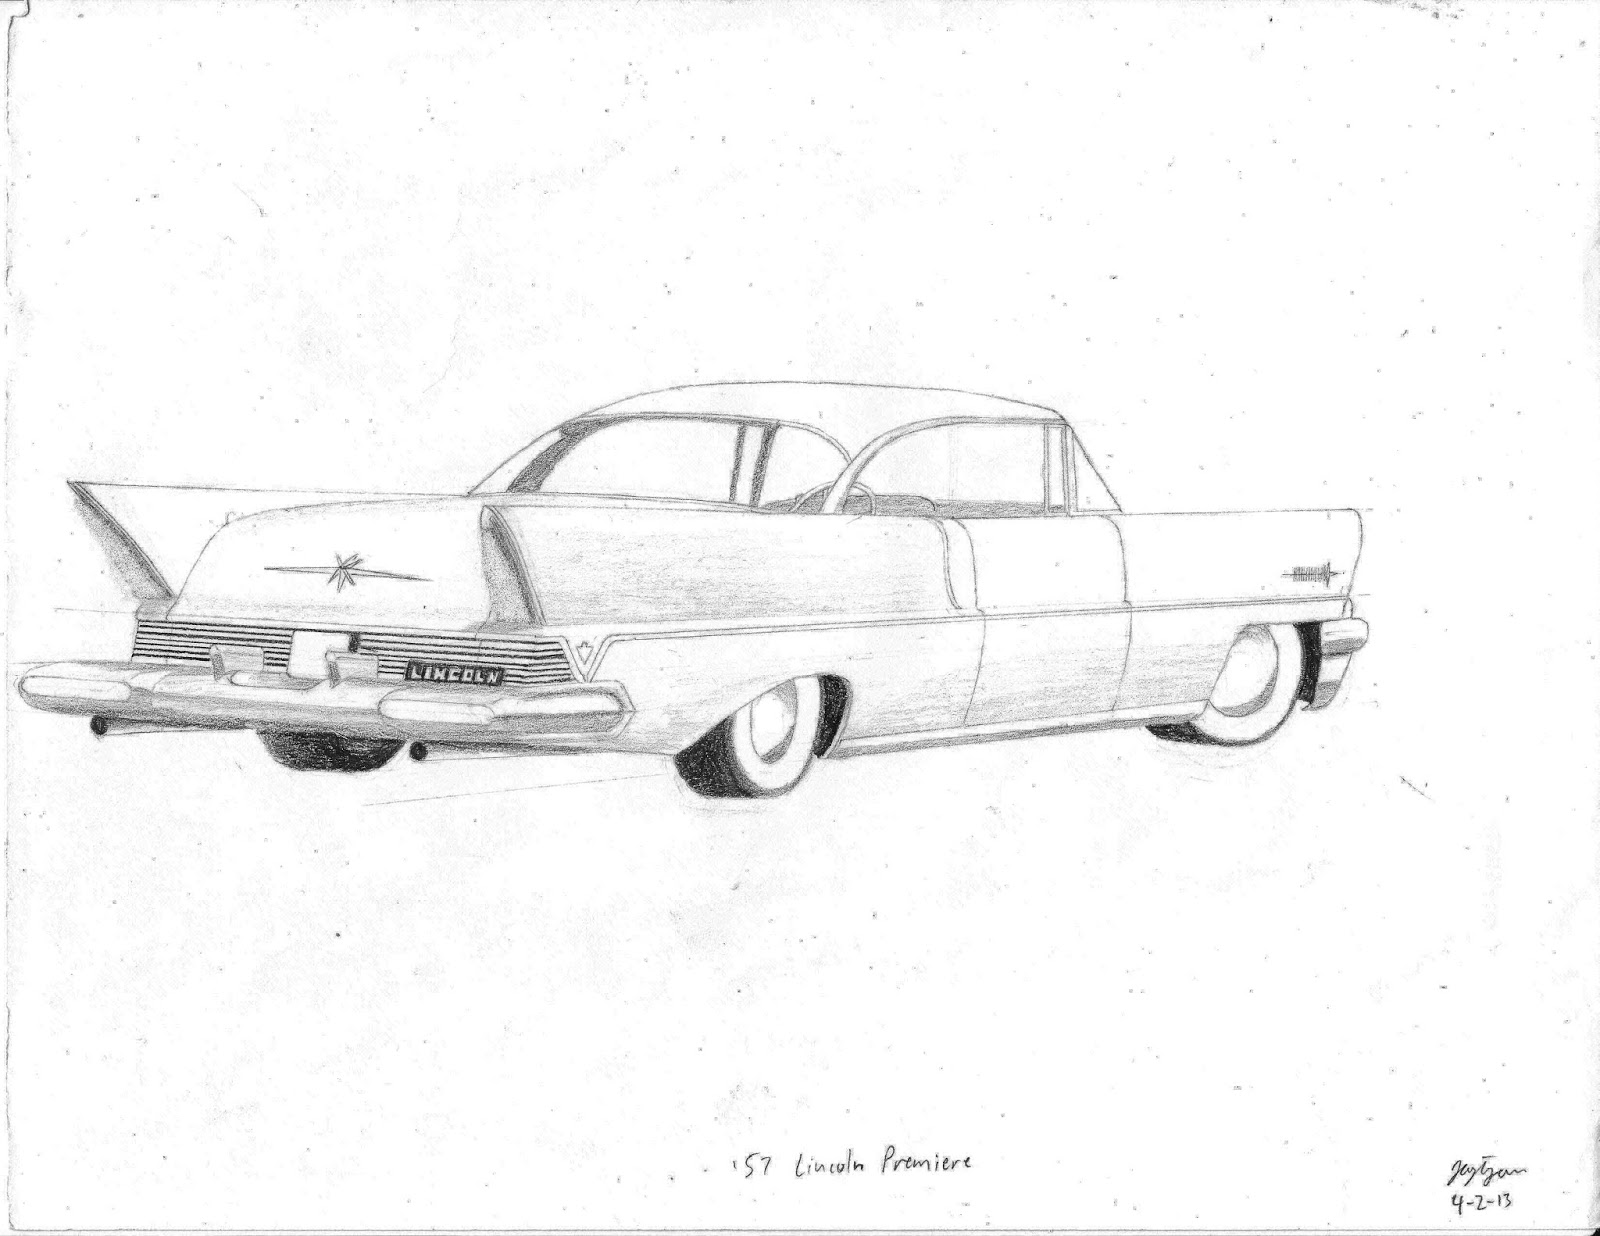 j turn more car art 1 2 3 etc 57 Ford Mustang to make way for the wheel changes i took out the hubcaps and created 57 lincoln premiere 2 on the left later to create the 4 door version